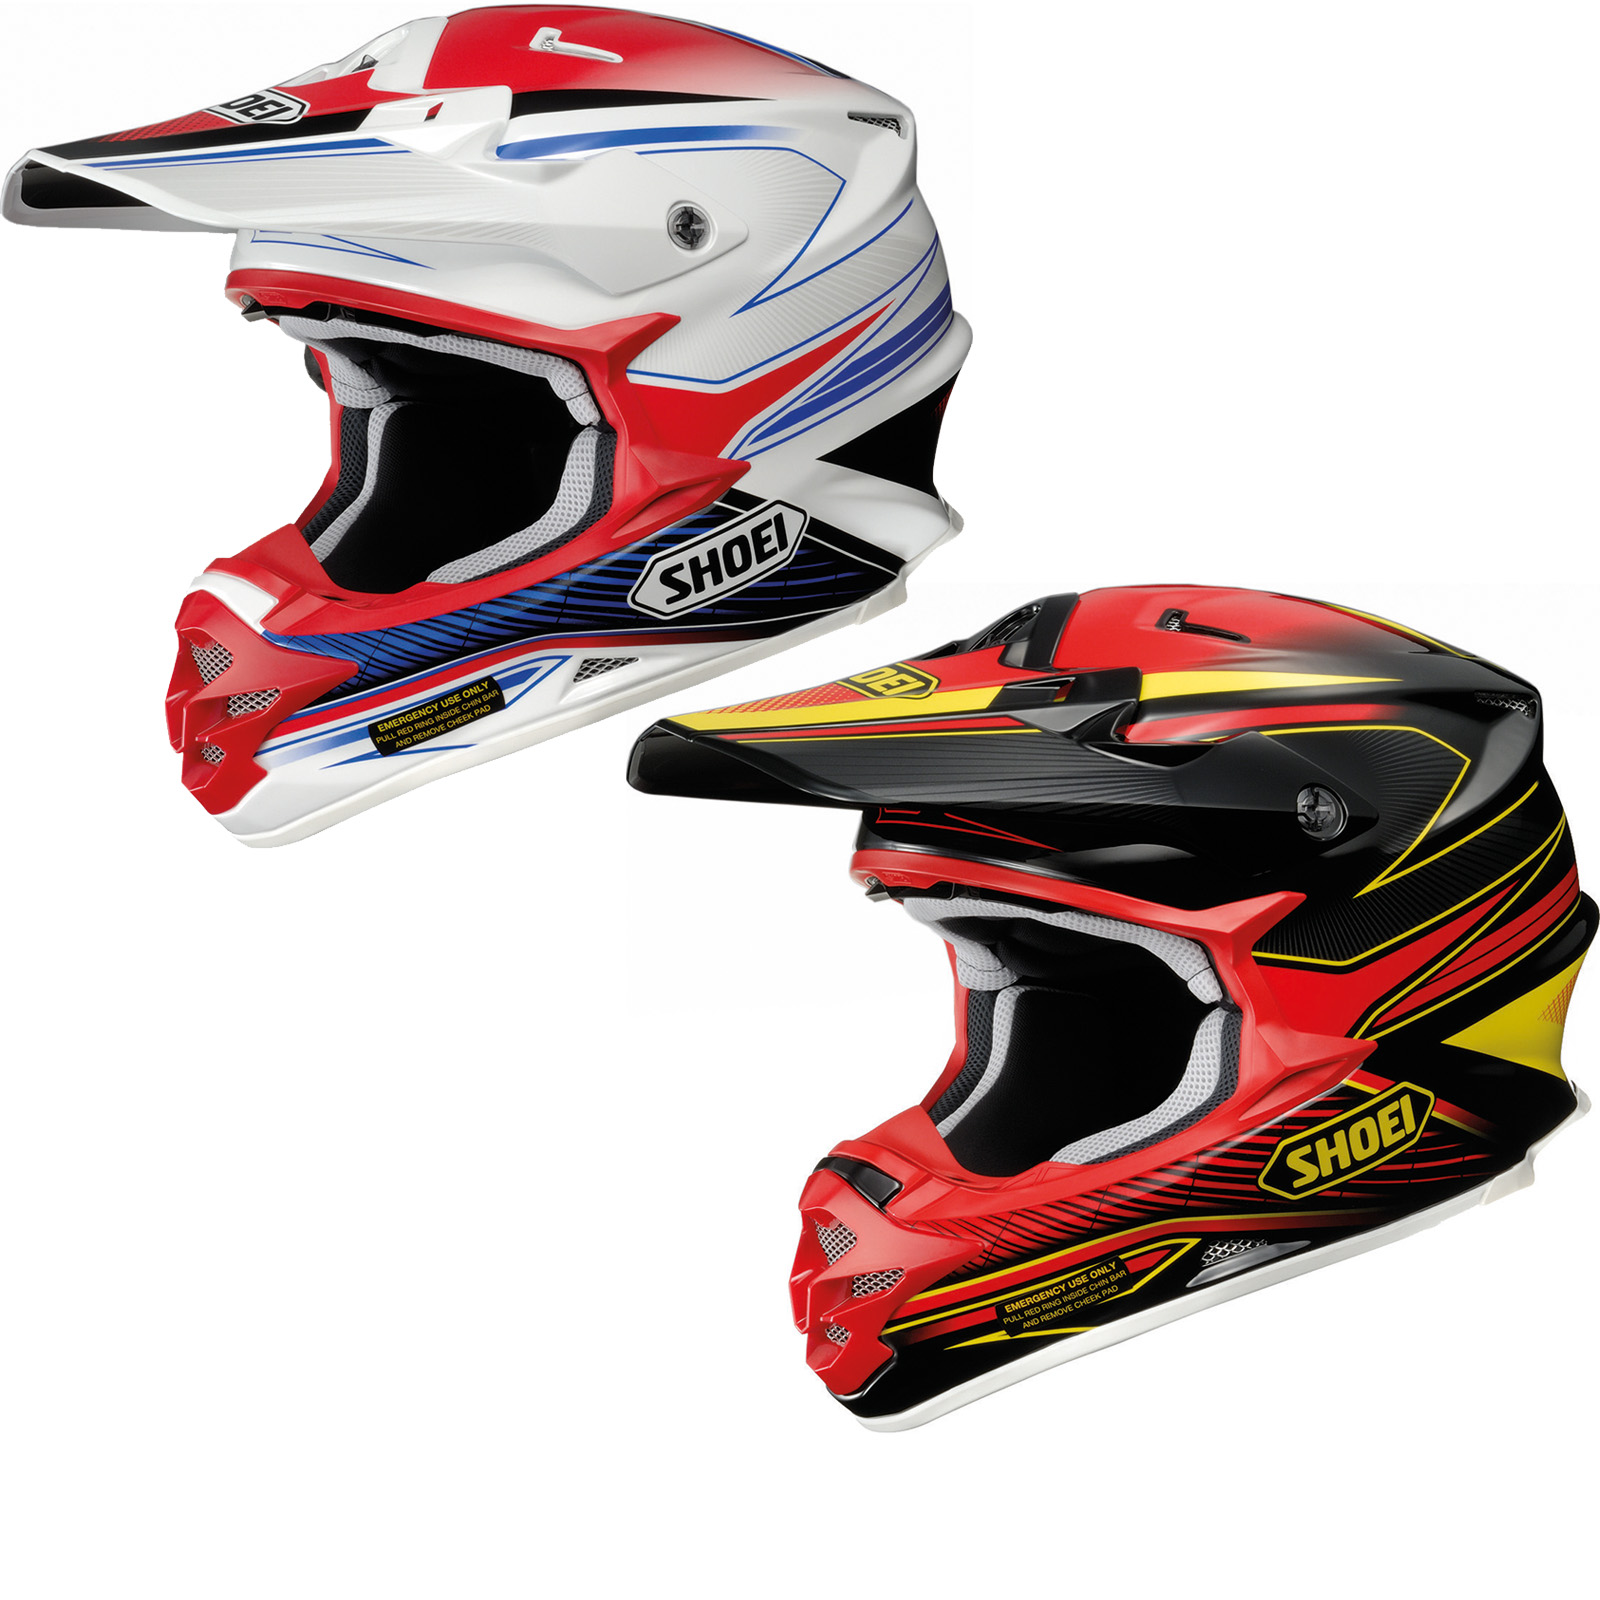 shoei vfx w sear motocross helmet motocross helmets. Black Bedroom Furniture Sets. Home Design Ideas